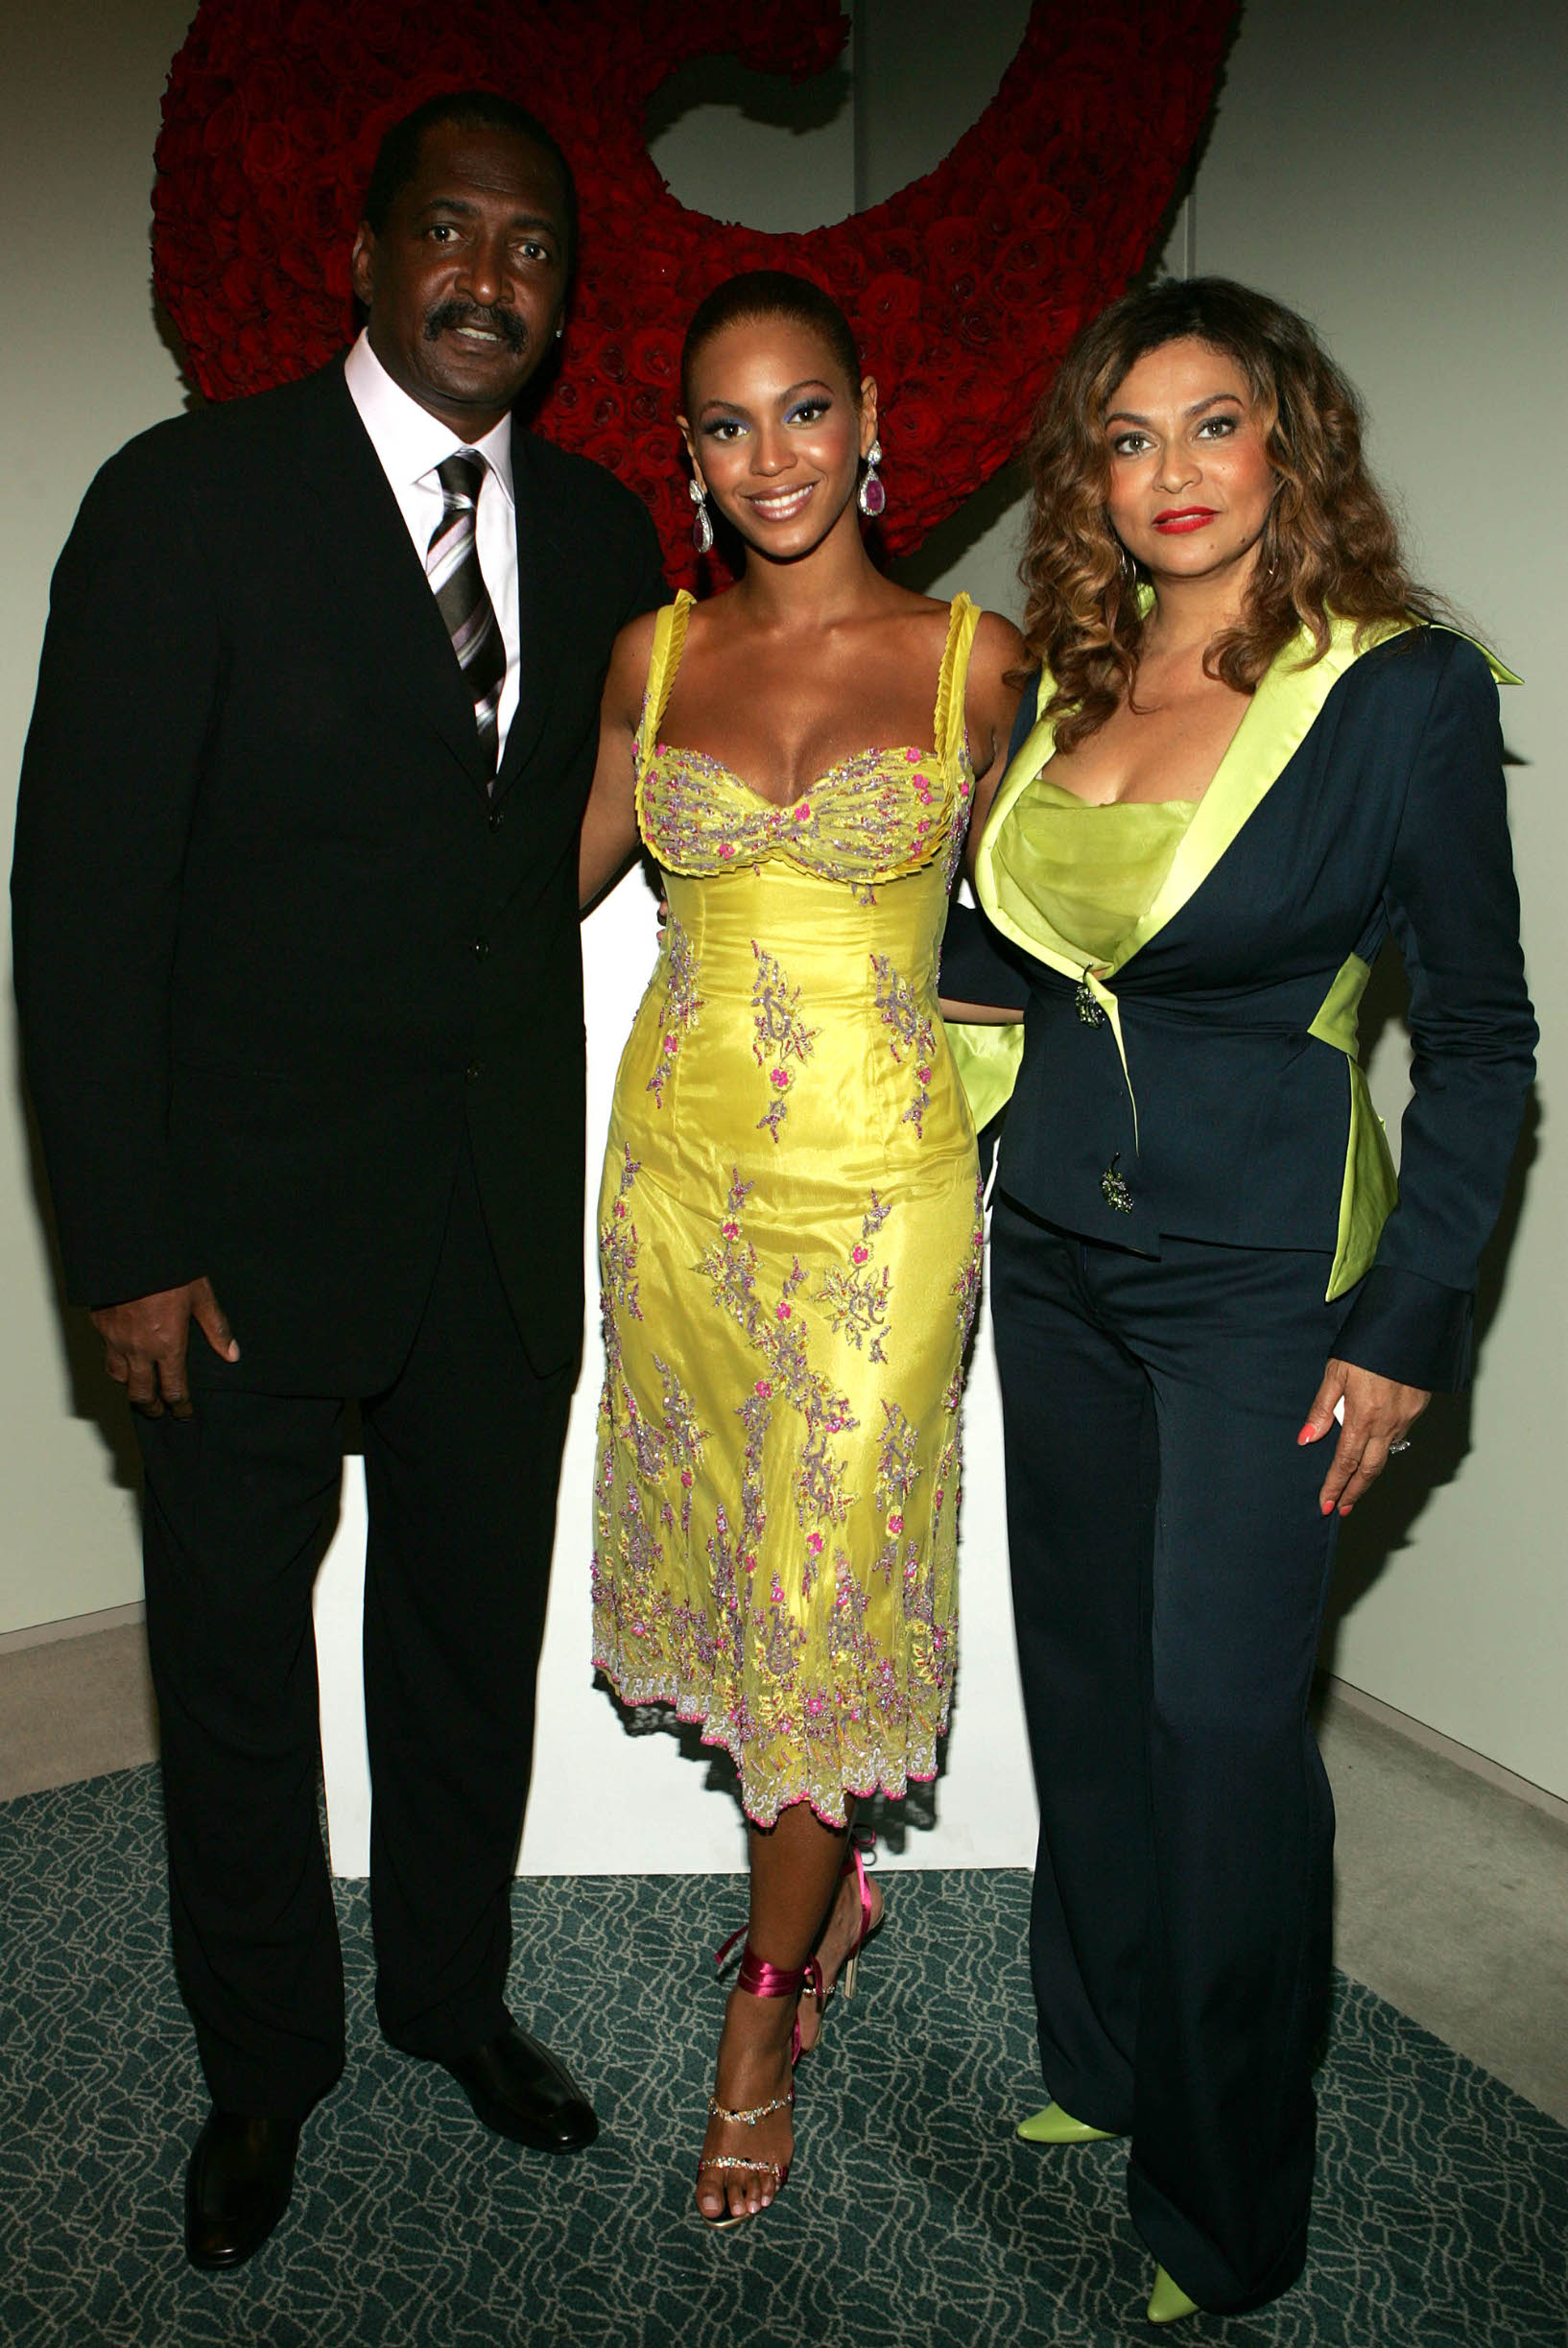 NEW YORK - JUNE 23:  (EXCLUSIVE) (L-R) Singer Beyonce Knowles(C) poses with her father and  manager Matthew Knowles and her mother Tina Knowles at the